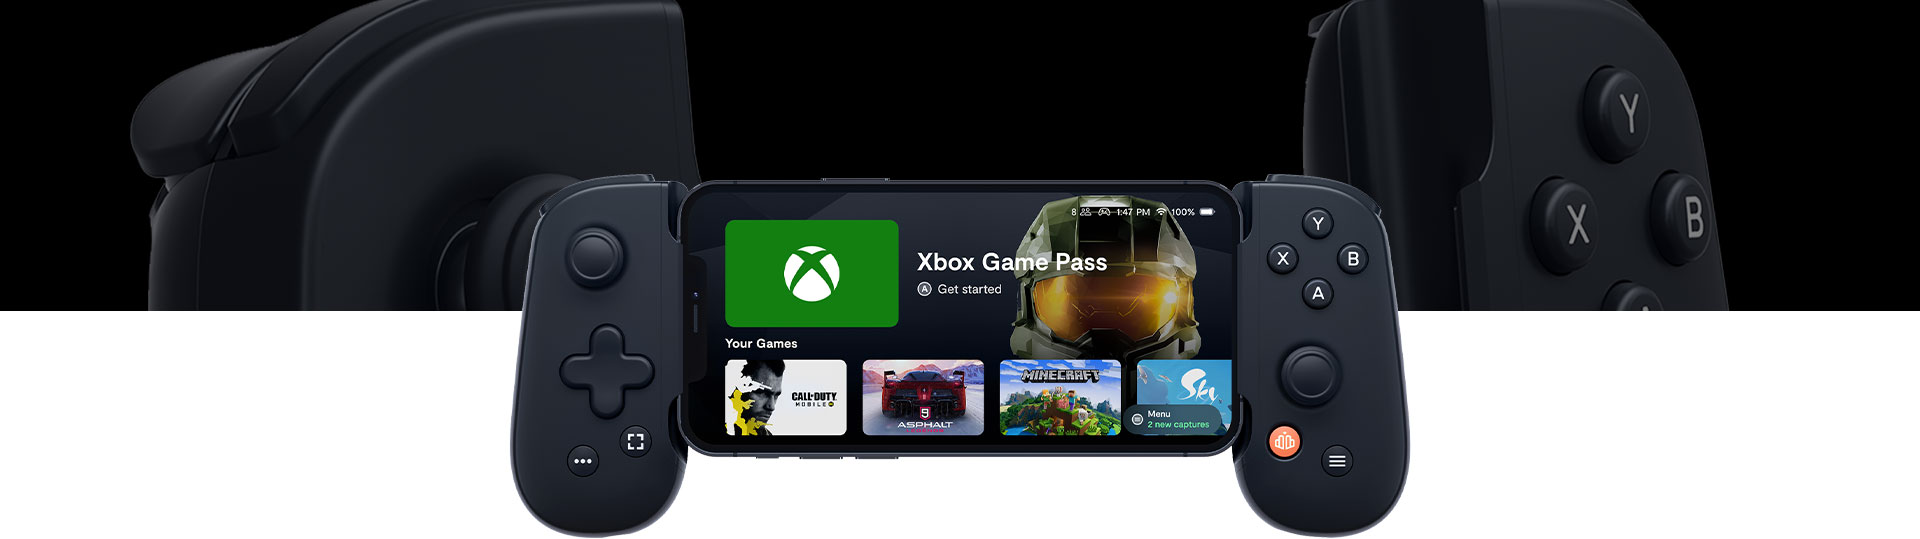 Backbone One home screen with Xbox Game Pass, Call of Duty, Asphalt, Minecraft, and Sky.